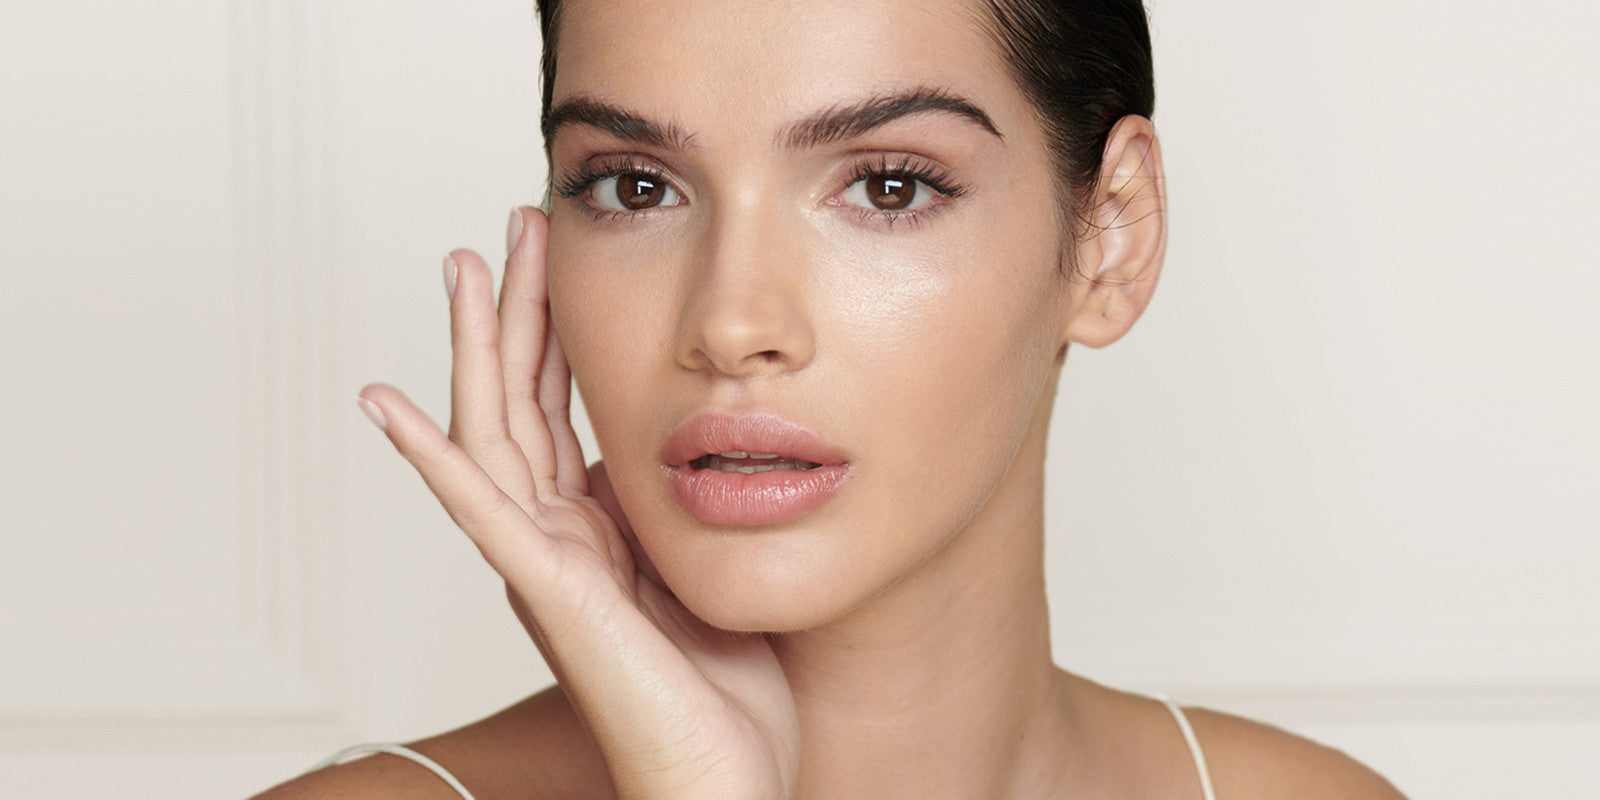 What perfect skin care should be?